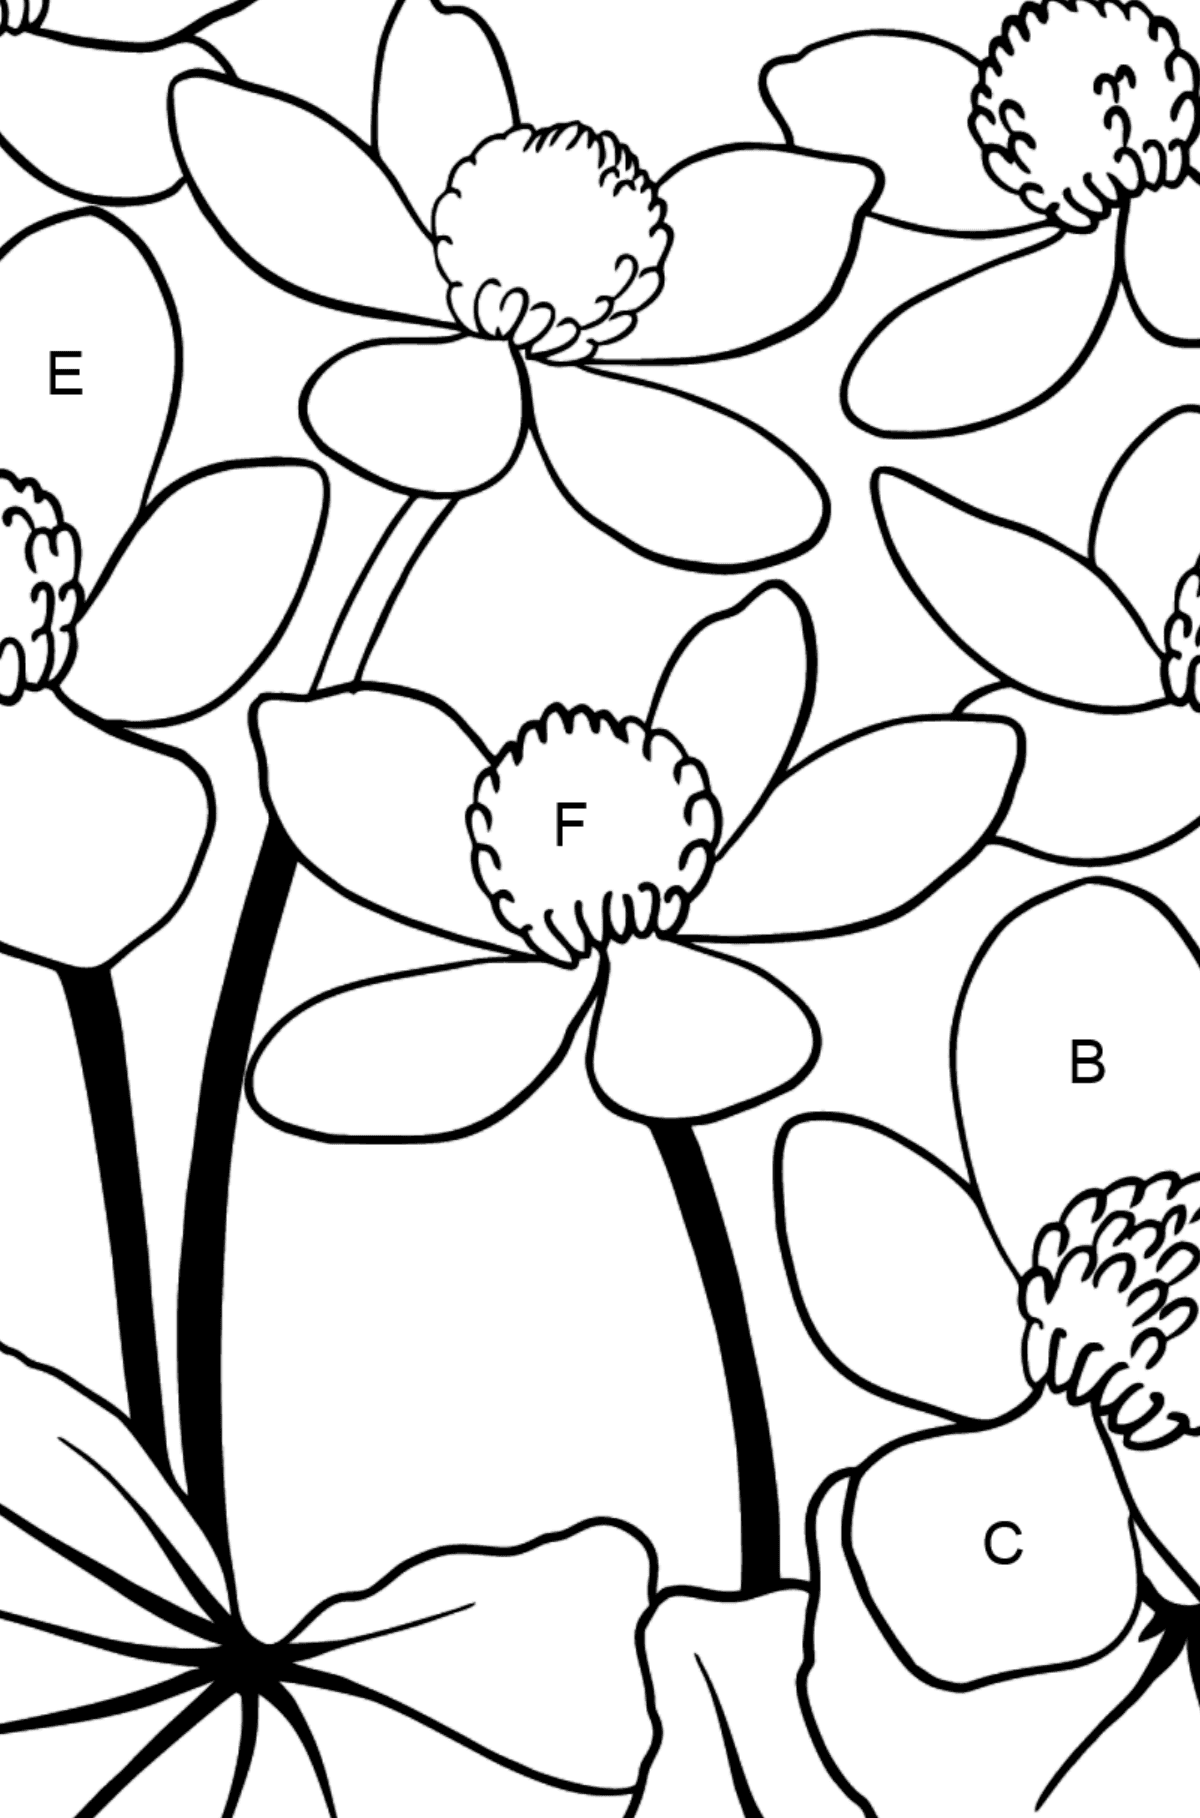 Flower Coloring Page - A Yellow and Red Marsh Marigold - Coloring by Letters for Kids